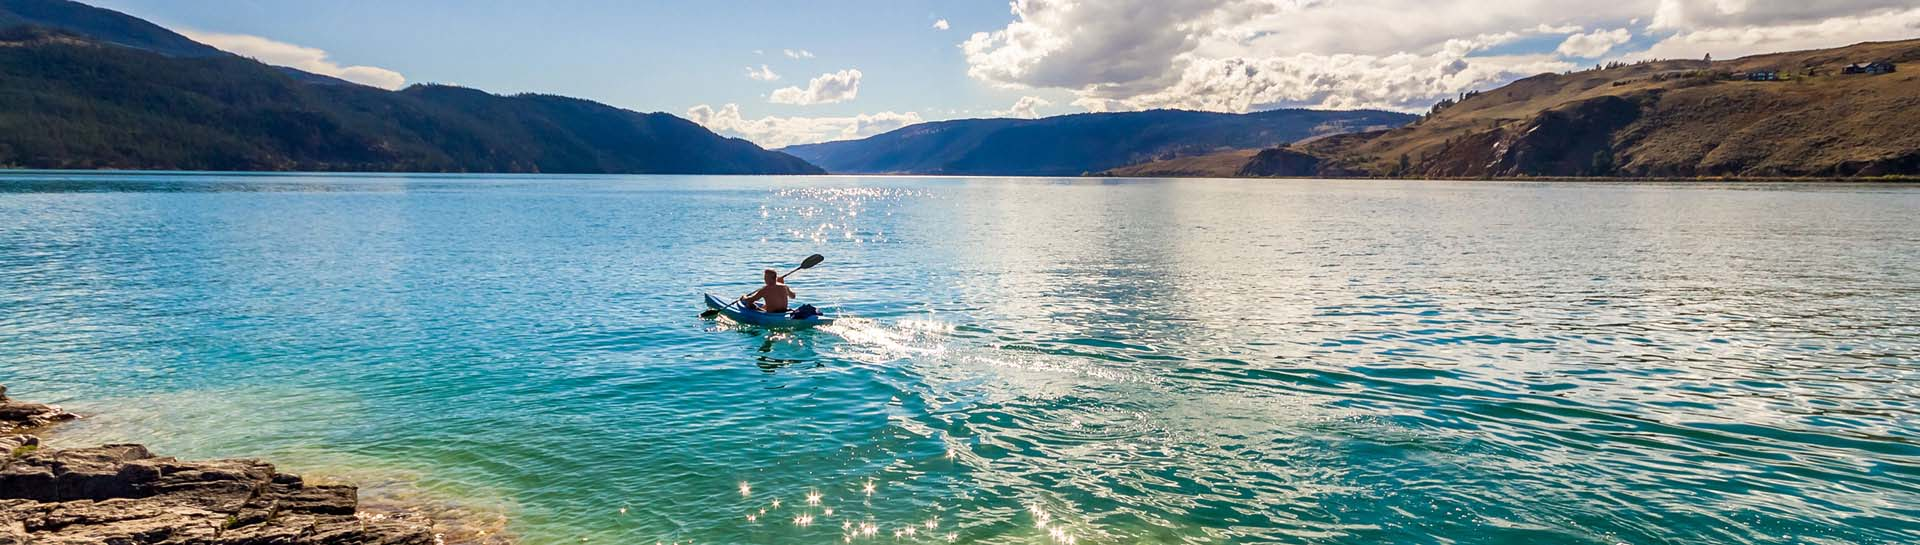 Kayaking on Kal Lake